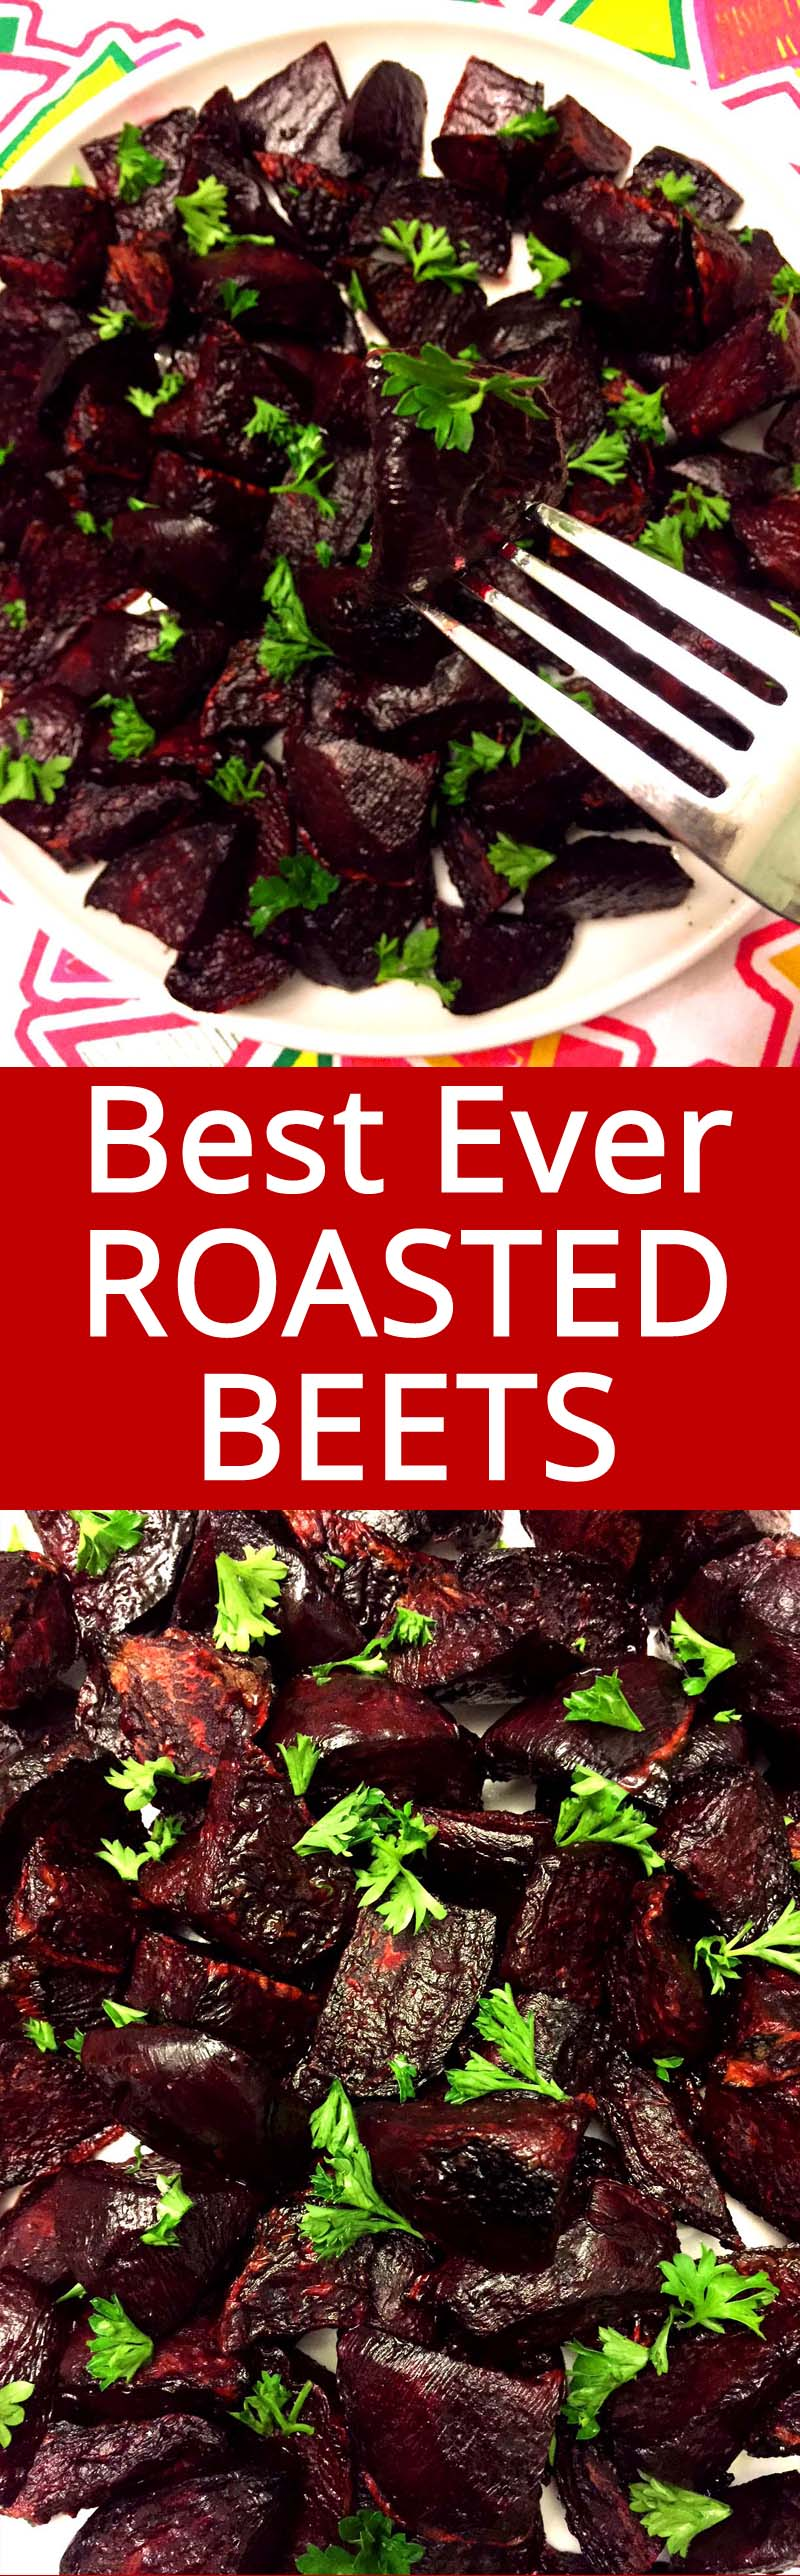 These oven roasted beets taste AMAZING! Even beet haters love those beets! They are so caramelized and delicious! YUM!